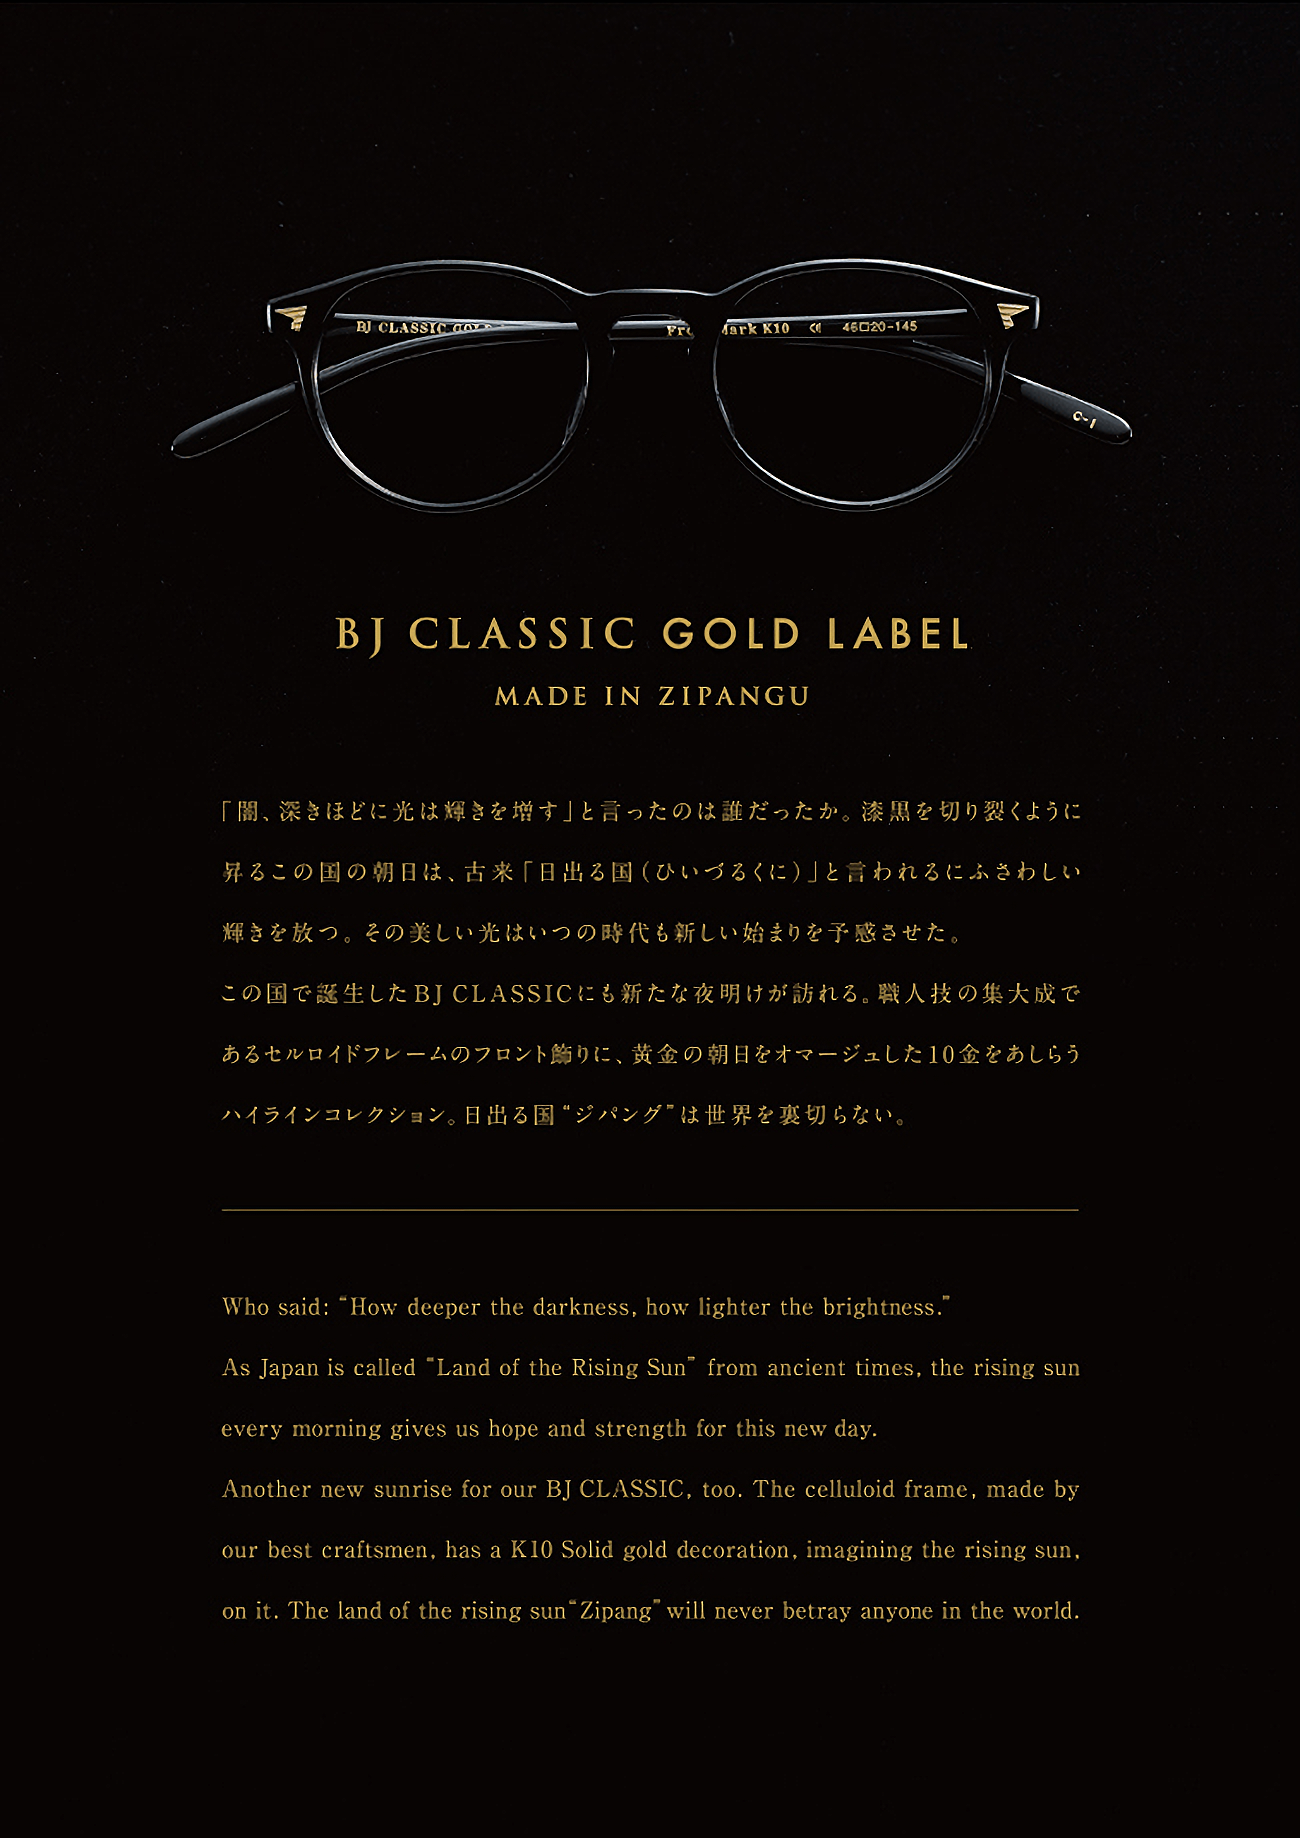 BJ CLASSIC GOLD LABEL